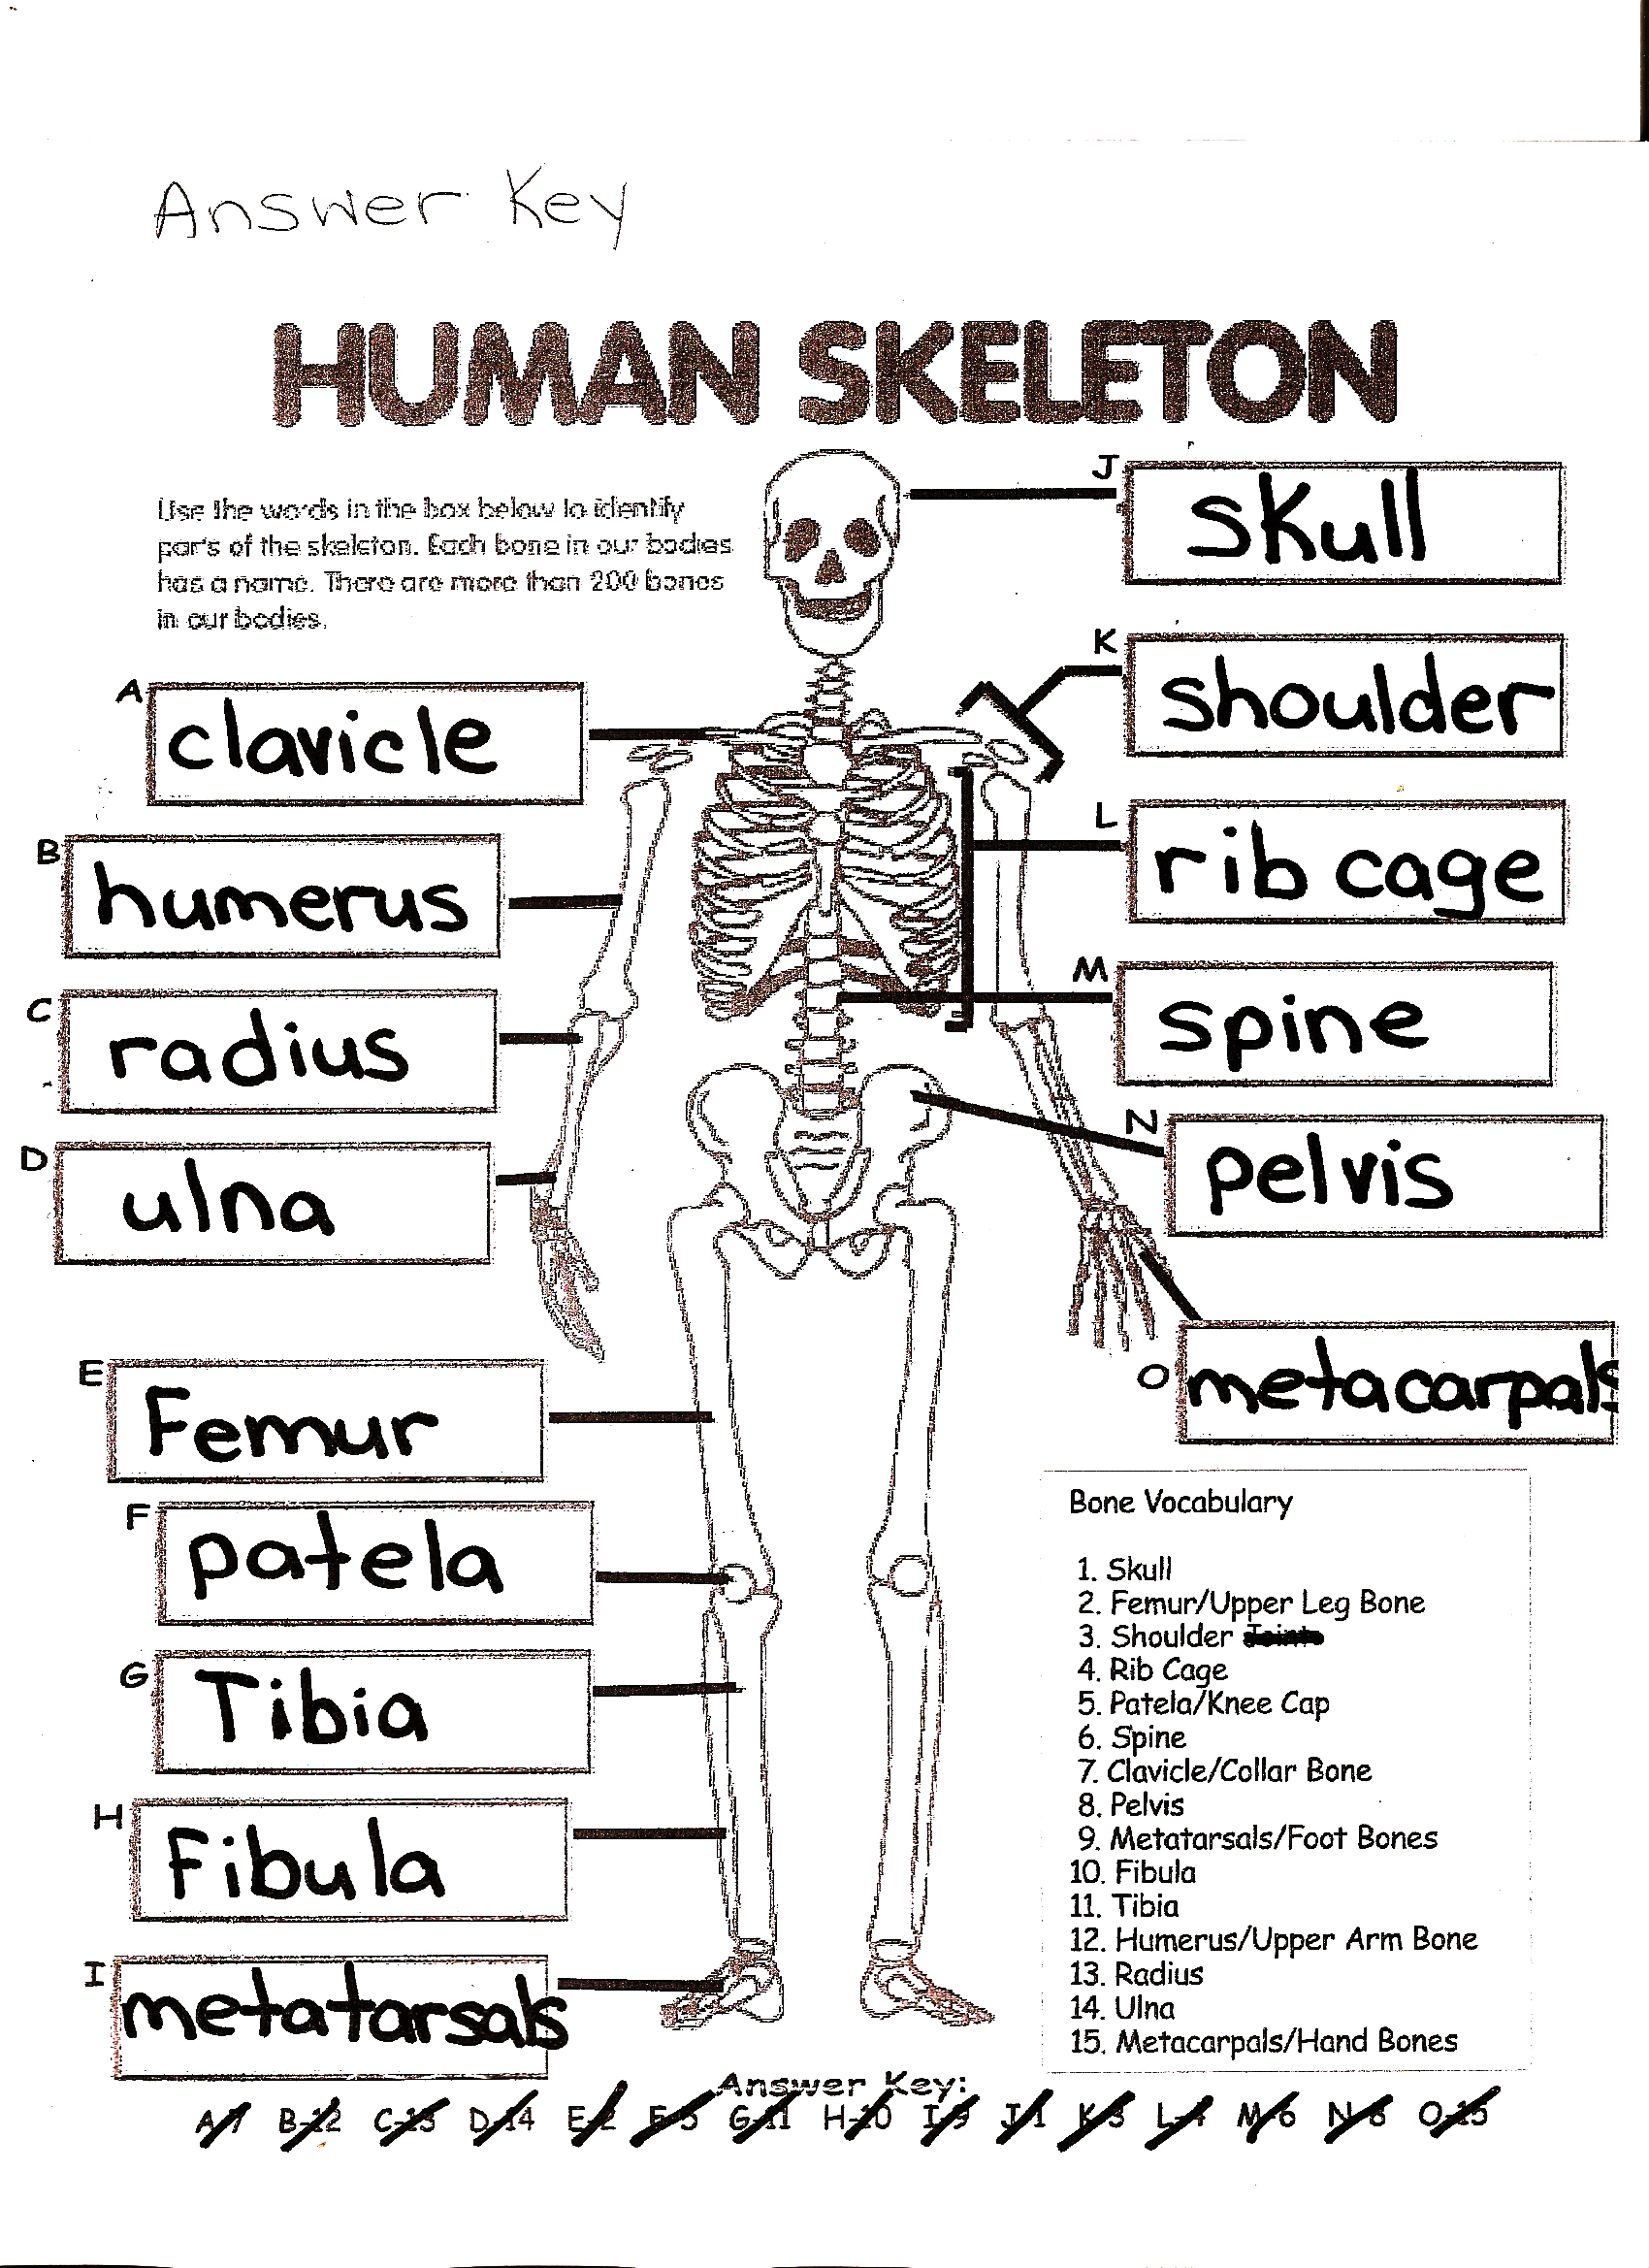 Skeletal System Coloring Book Answers – Chapter 5 Skeletal System Worksheet Answers